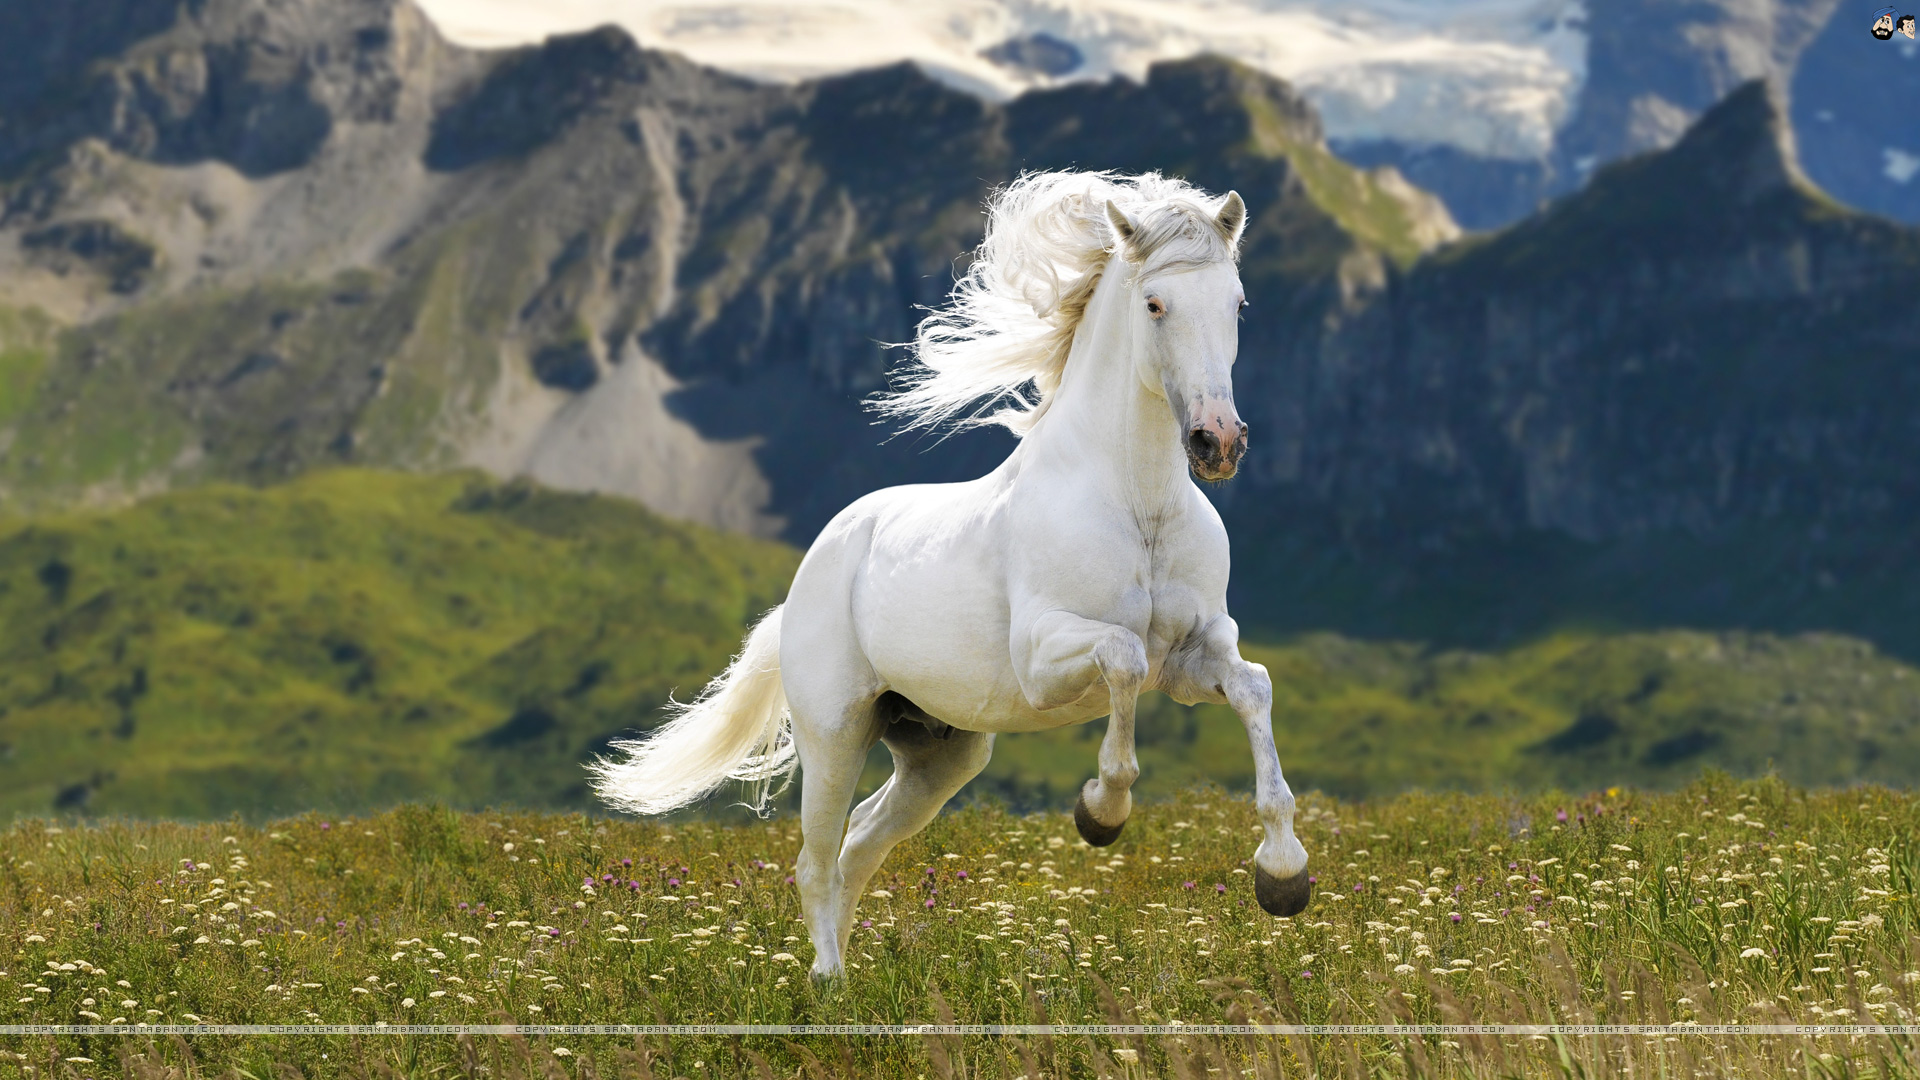 Download 3d Beautiful White Horse Wallpaper Gallery